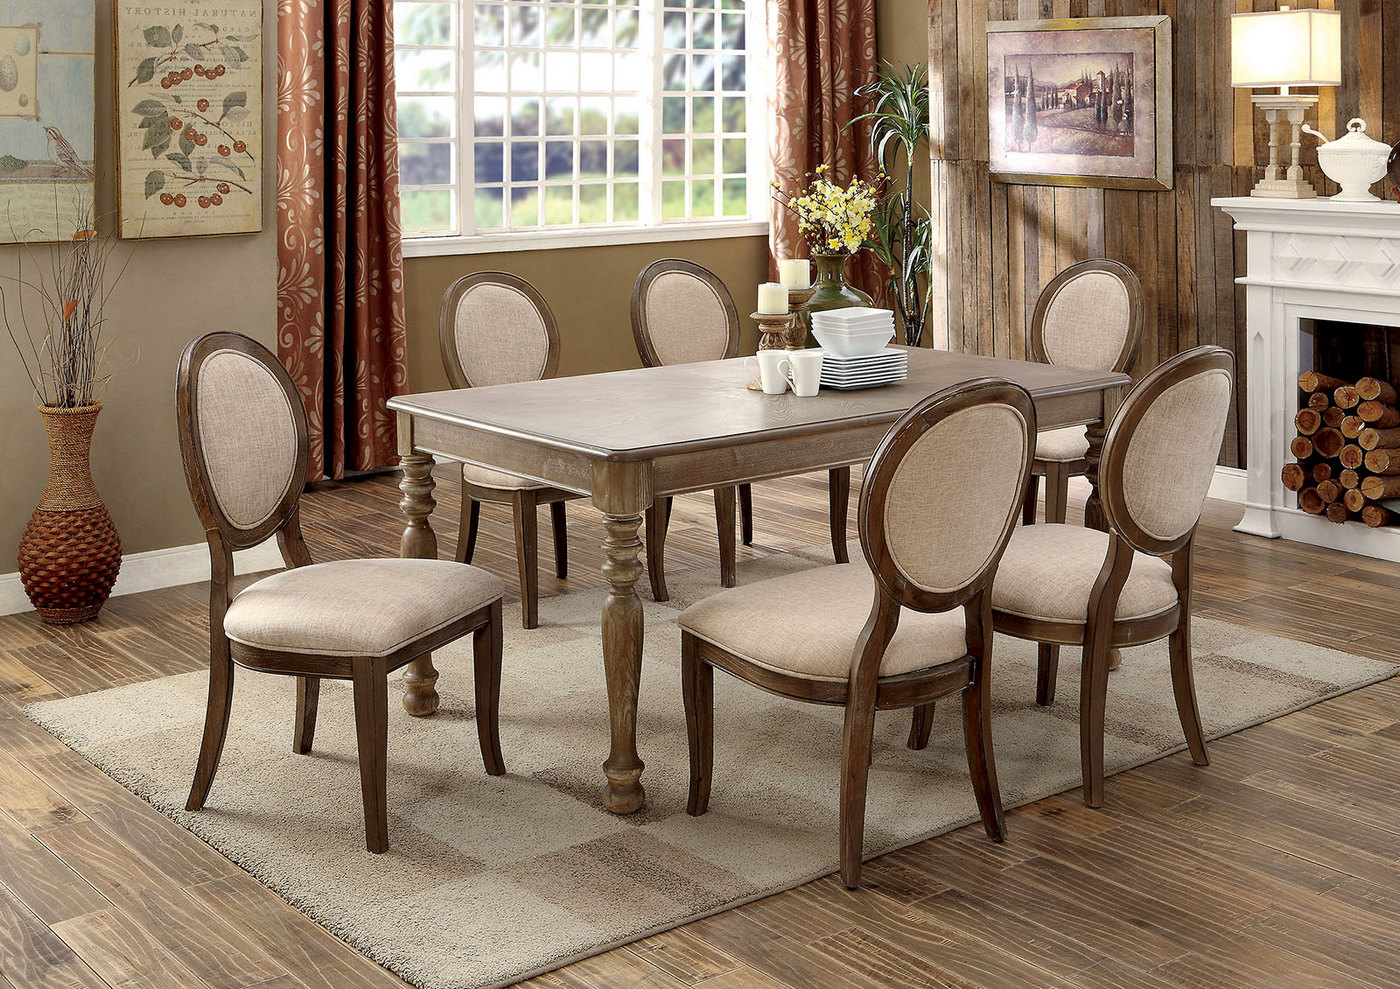 set of 2 hadley wood round back dining chairs in rustic oak ivory fabric. Black Bedroom Furniture Sets. Home Design Ideas